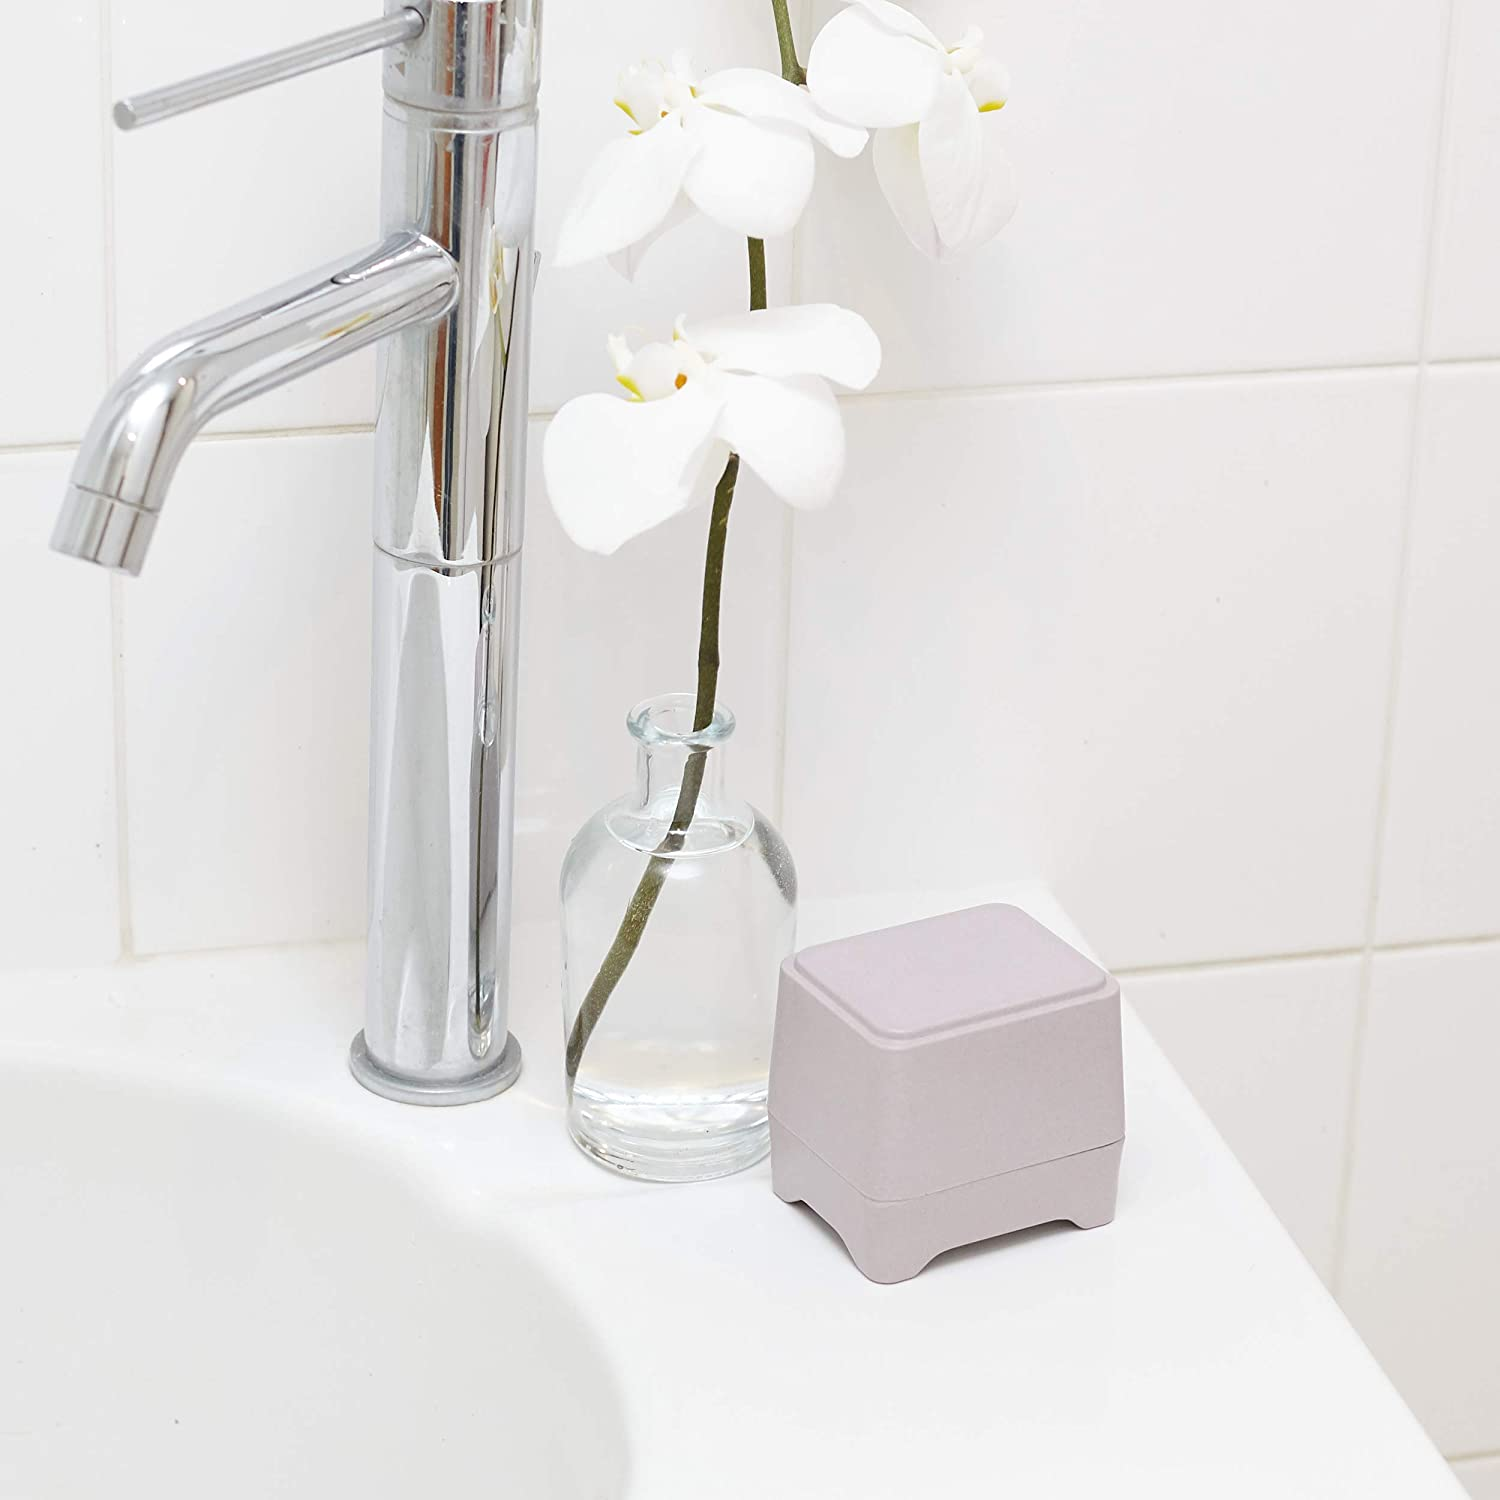 Ethique Eco Friendly in Shower Storage Container Lilac Bamboo Sugarcane 1 ea